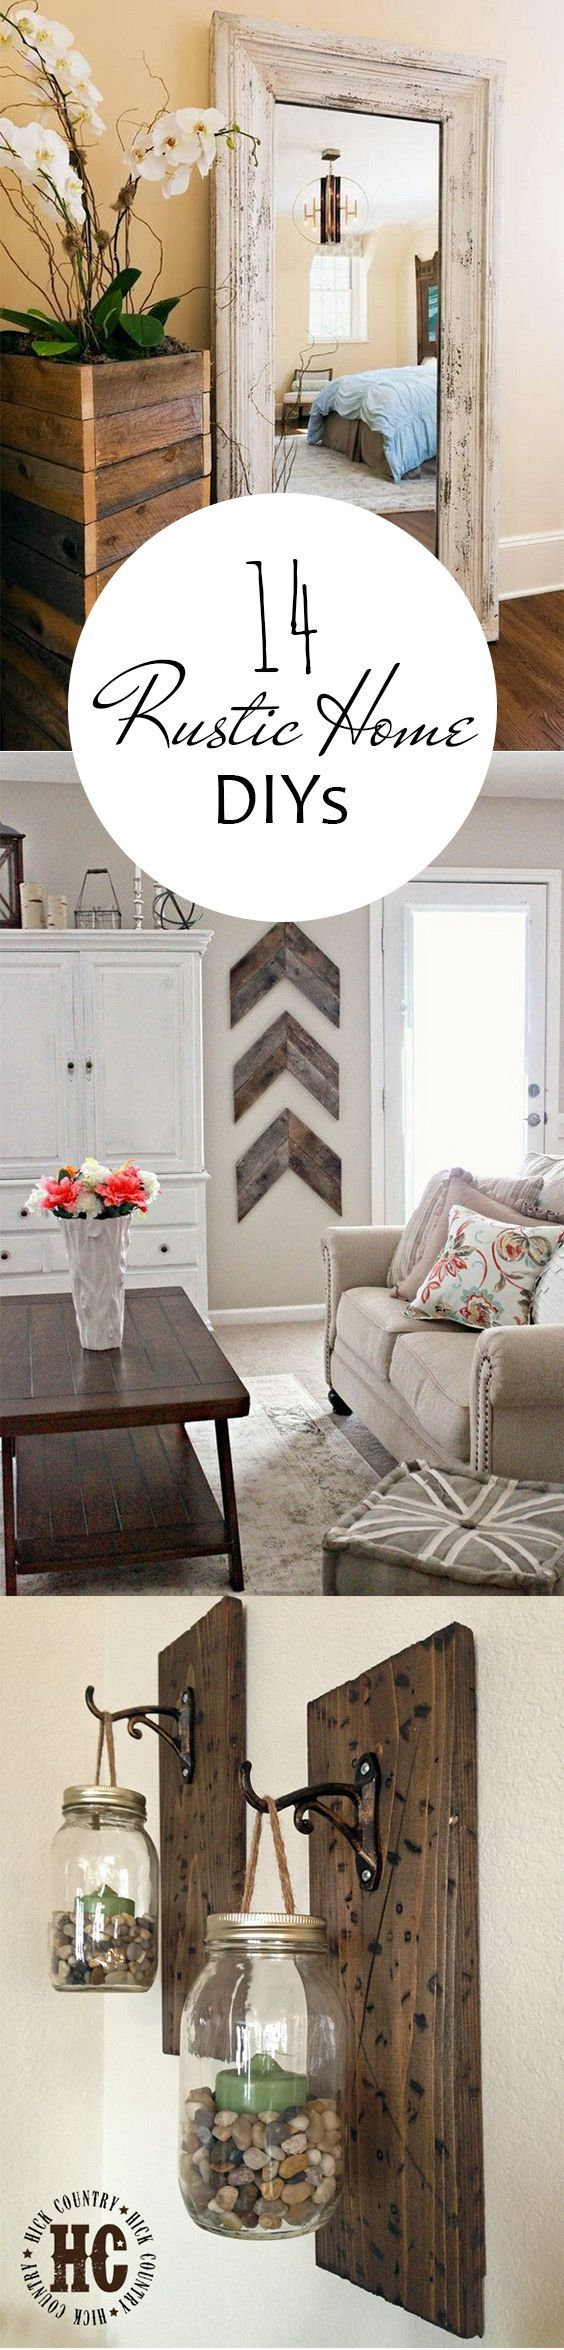 DIY projects, easy DIY, rustic home, farmhouse DIY projects, popular pin, DIY home, DIY rustic home decor, DIY farmhouse decor